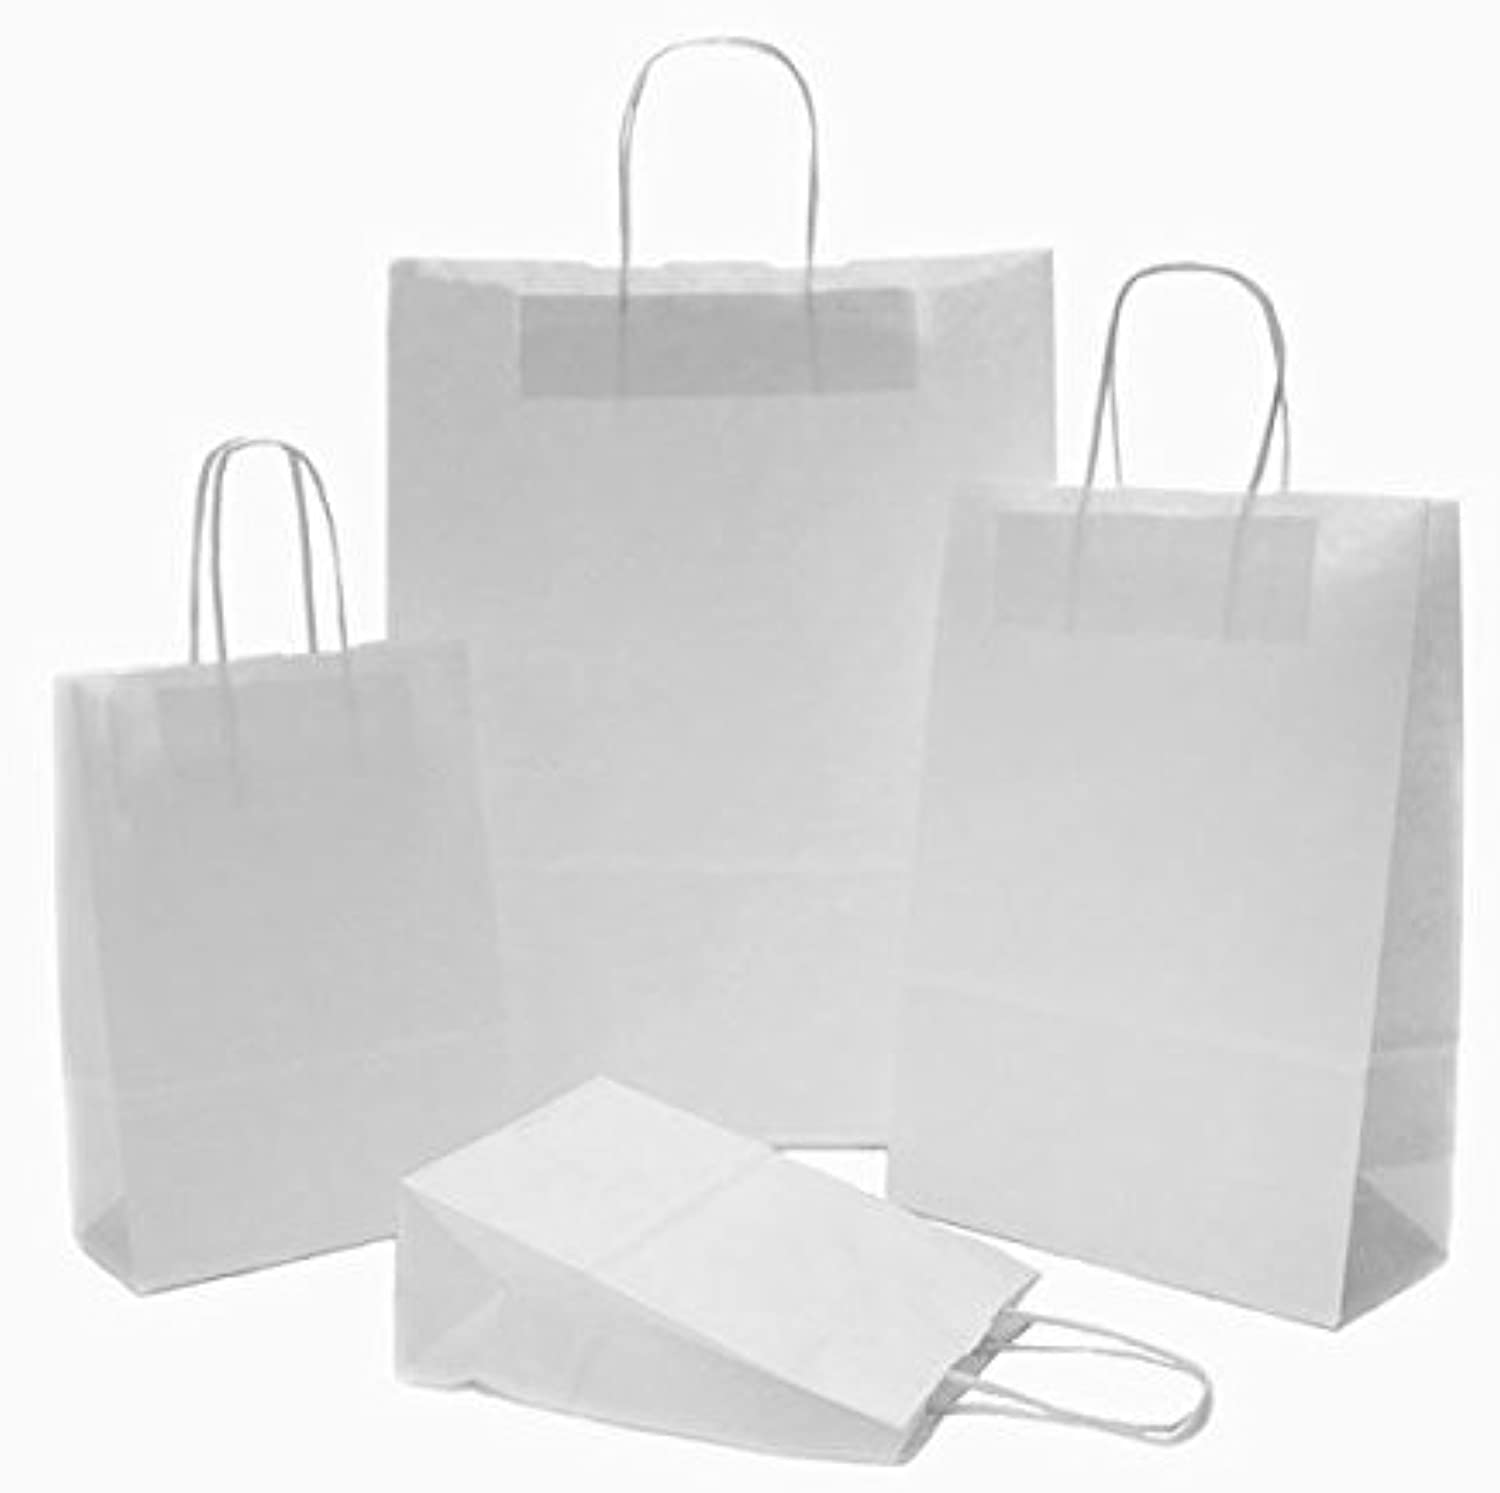 250 x White Paper Party Bags Twisted Handles 23x32+10cm Wedding Favour Bags Birthday Gift Bags